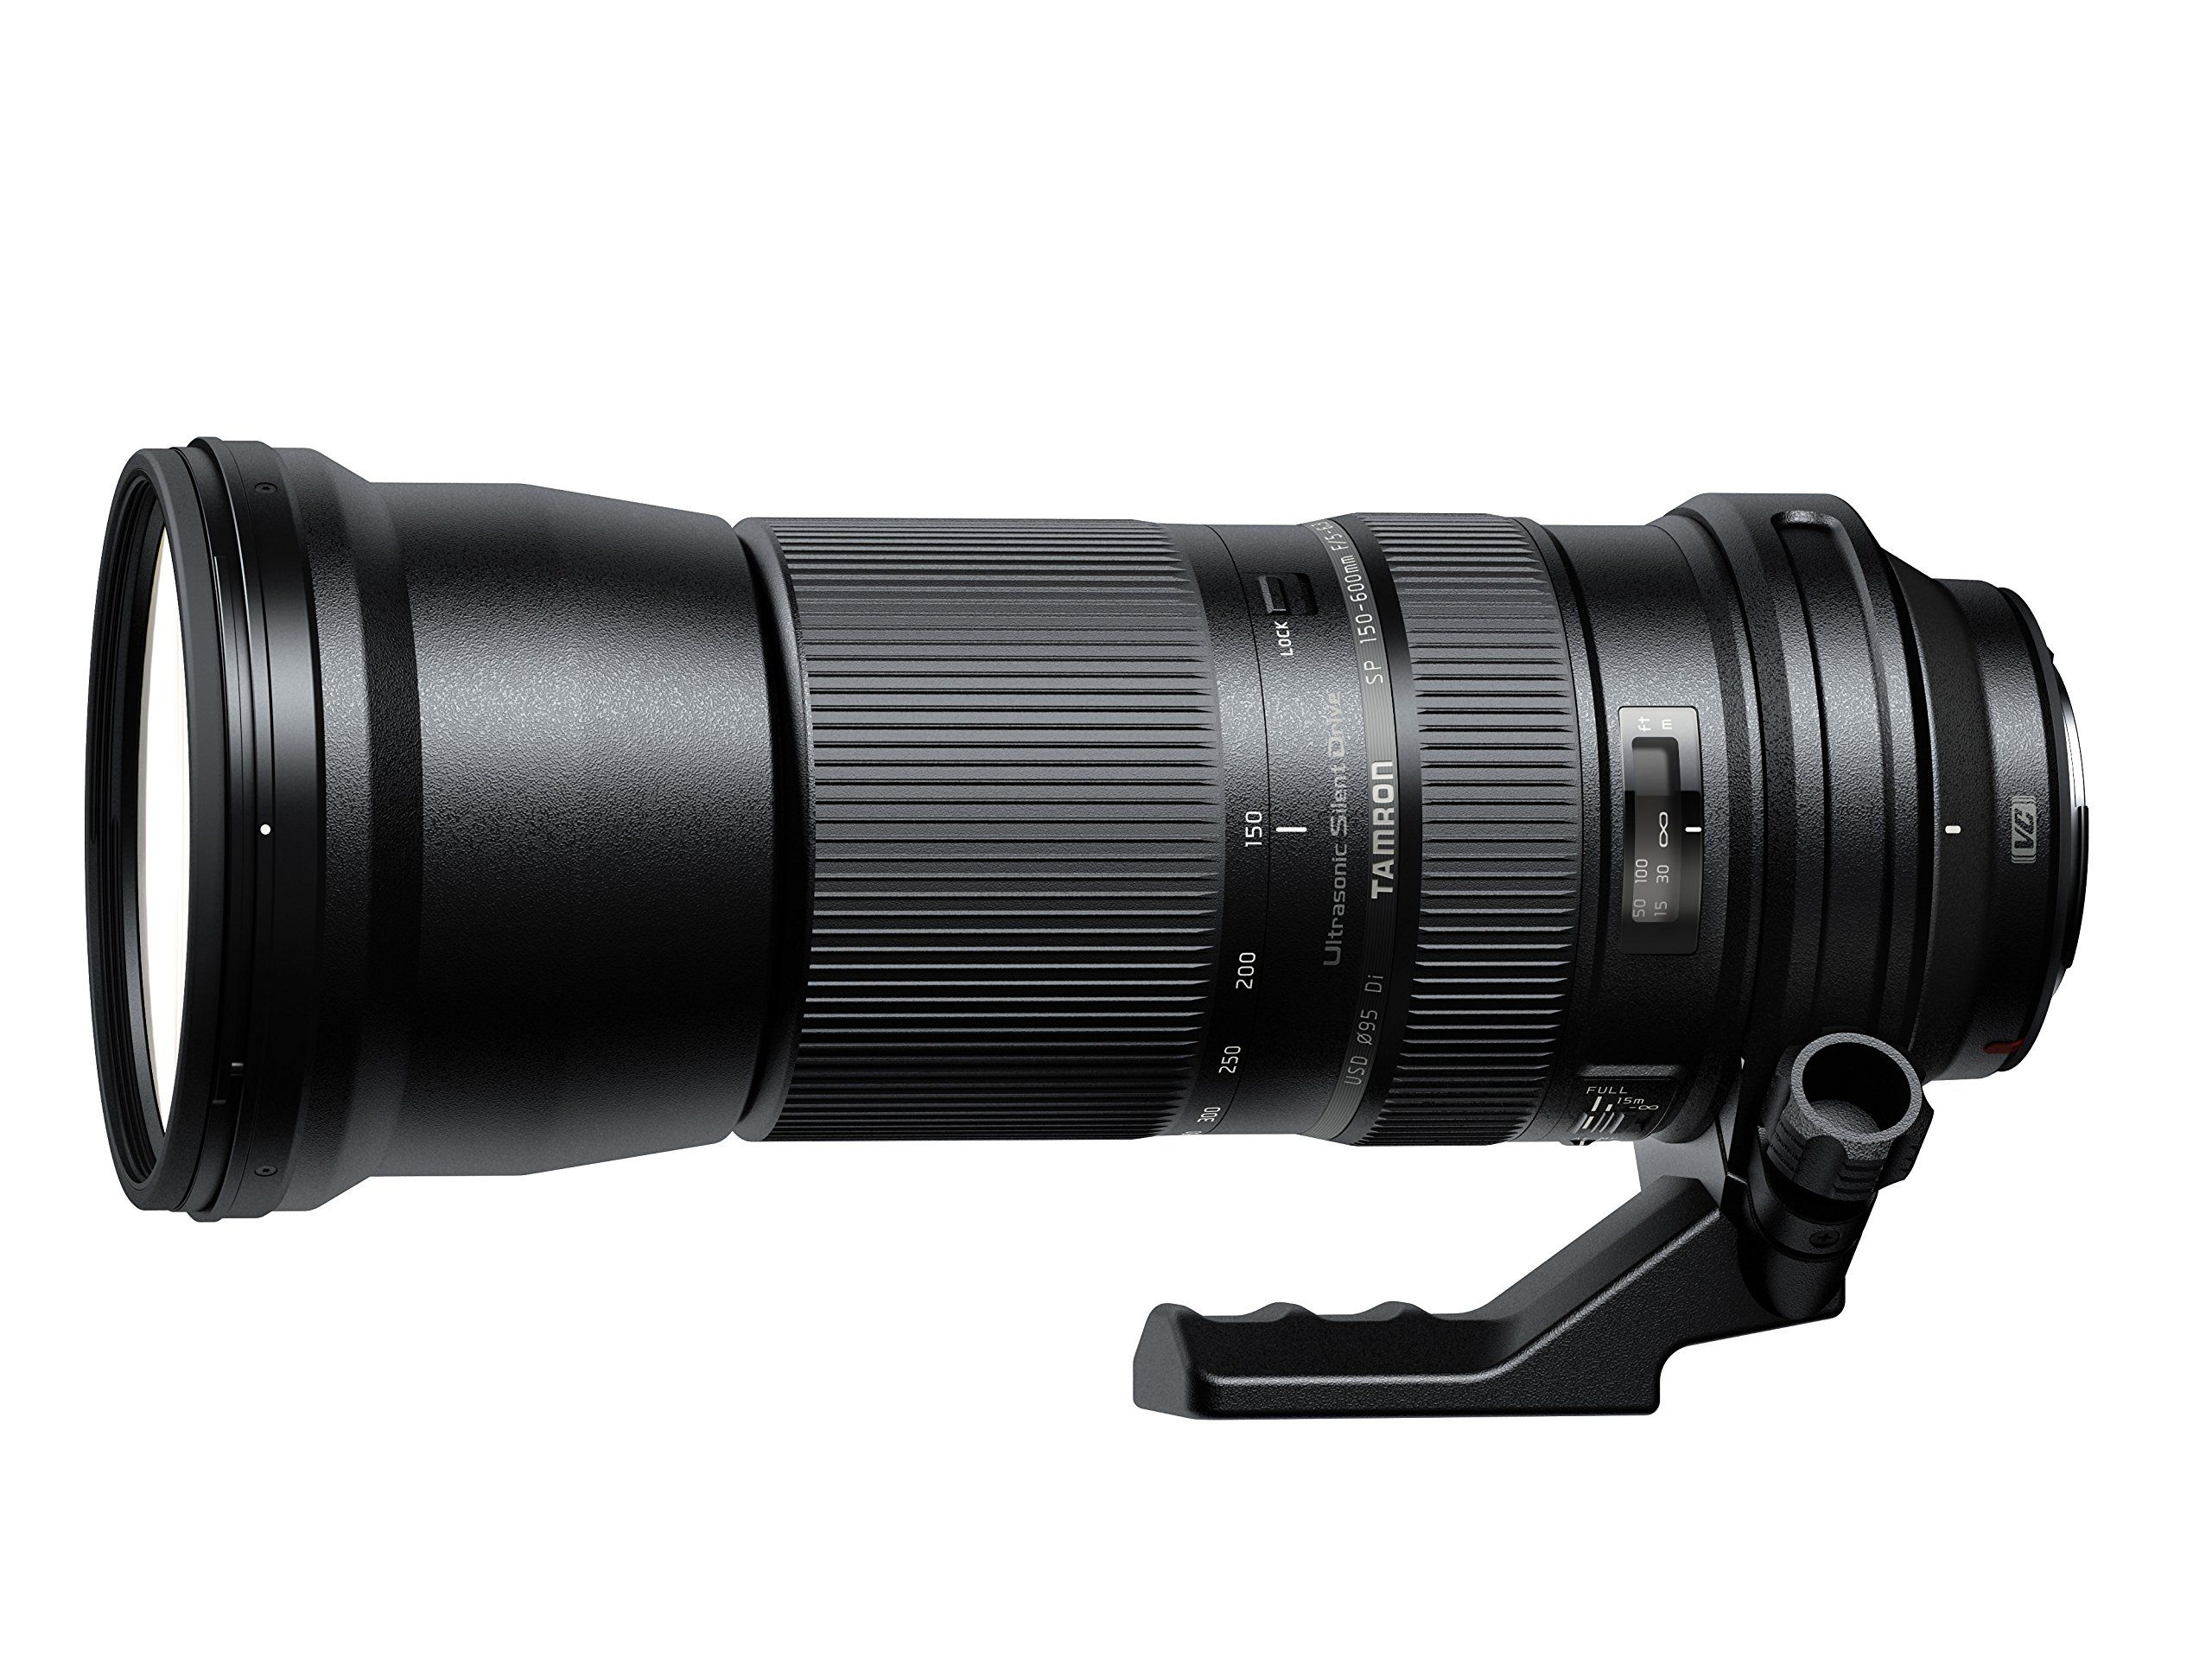 Tamron AFA011N700 SP 150-600mm F/5-6.3 Di VC USD Zoom Lens for Nikon ...